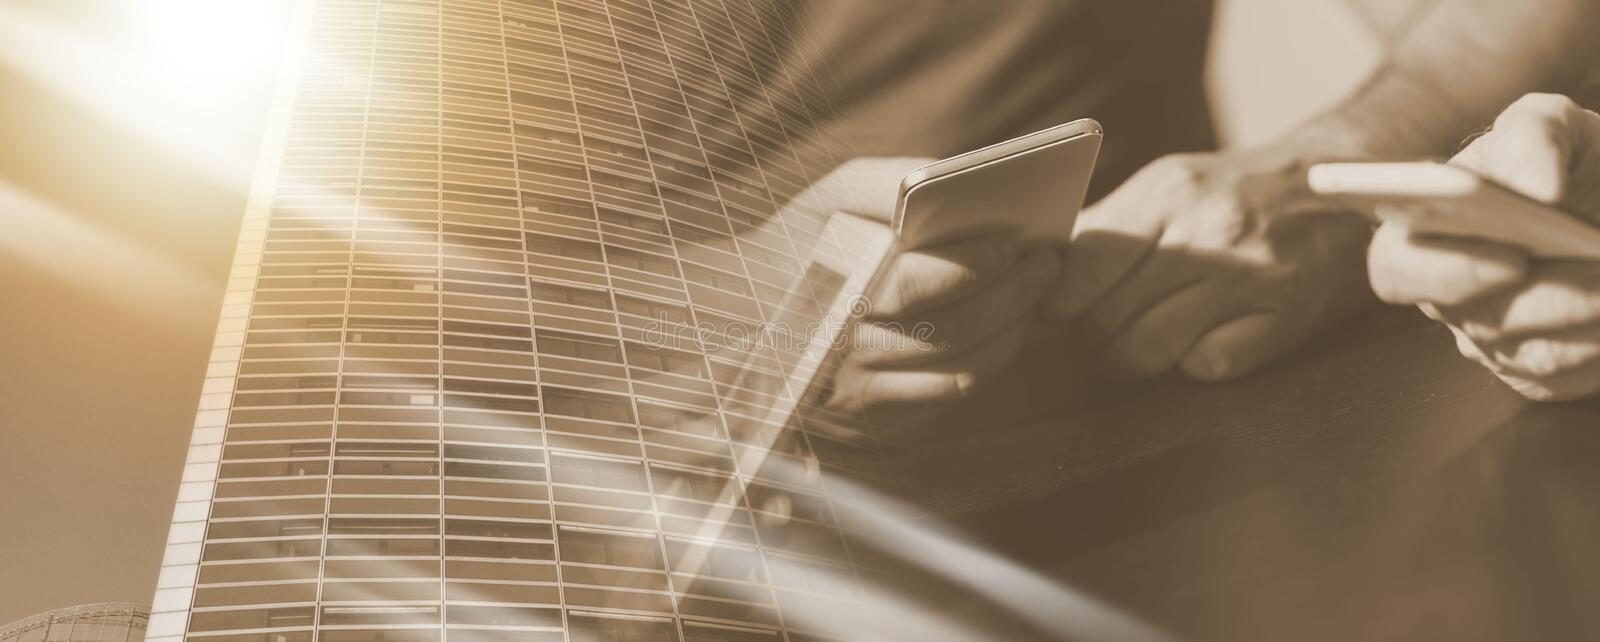 People hands using mobile phones; multiple exposure royalty free stock photography